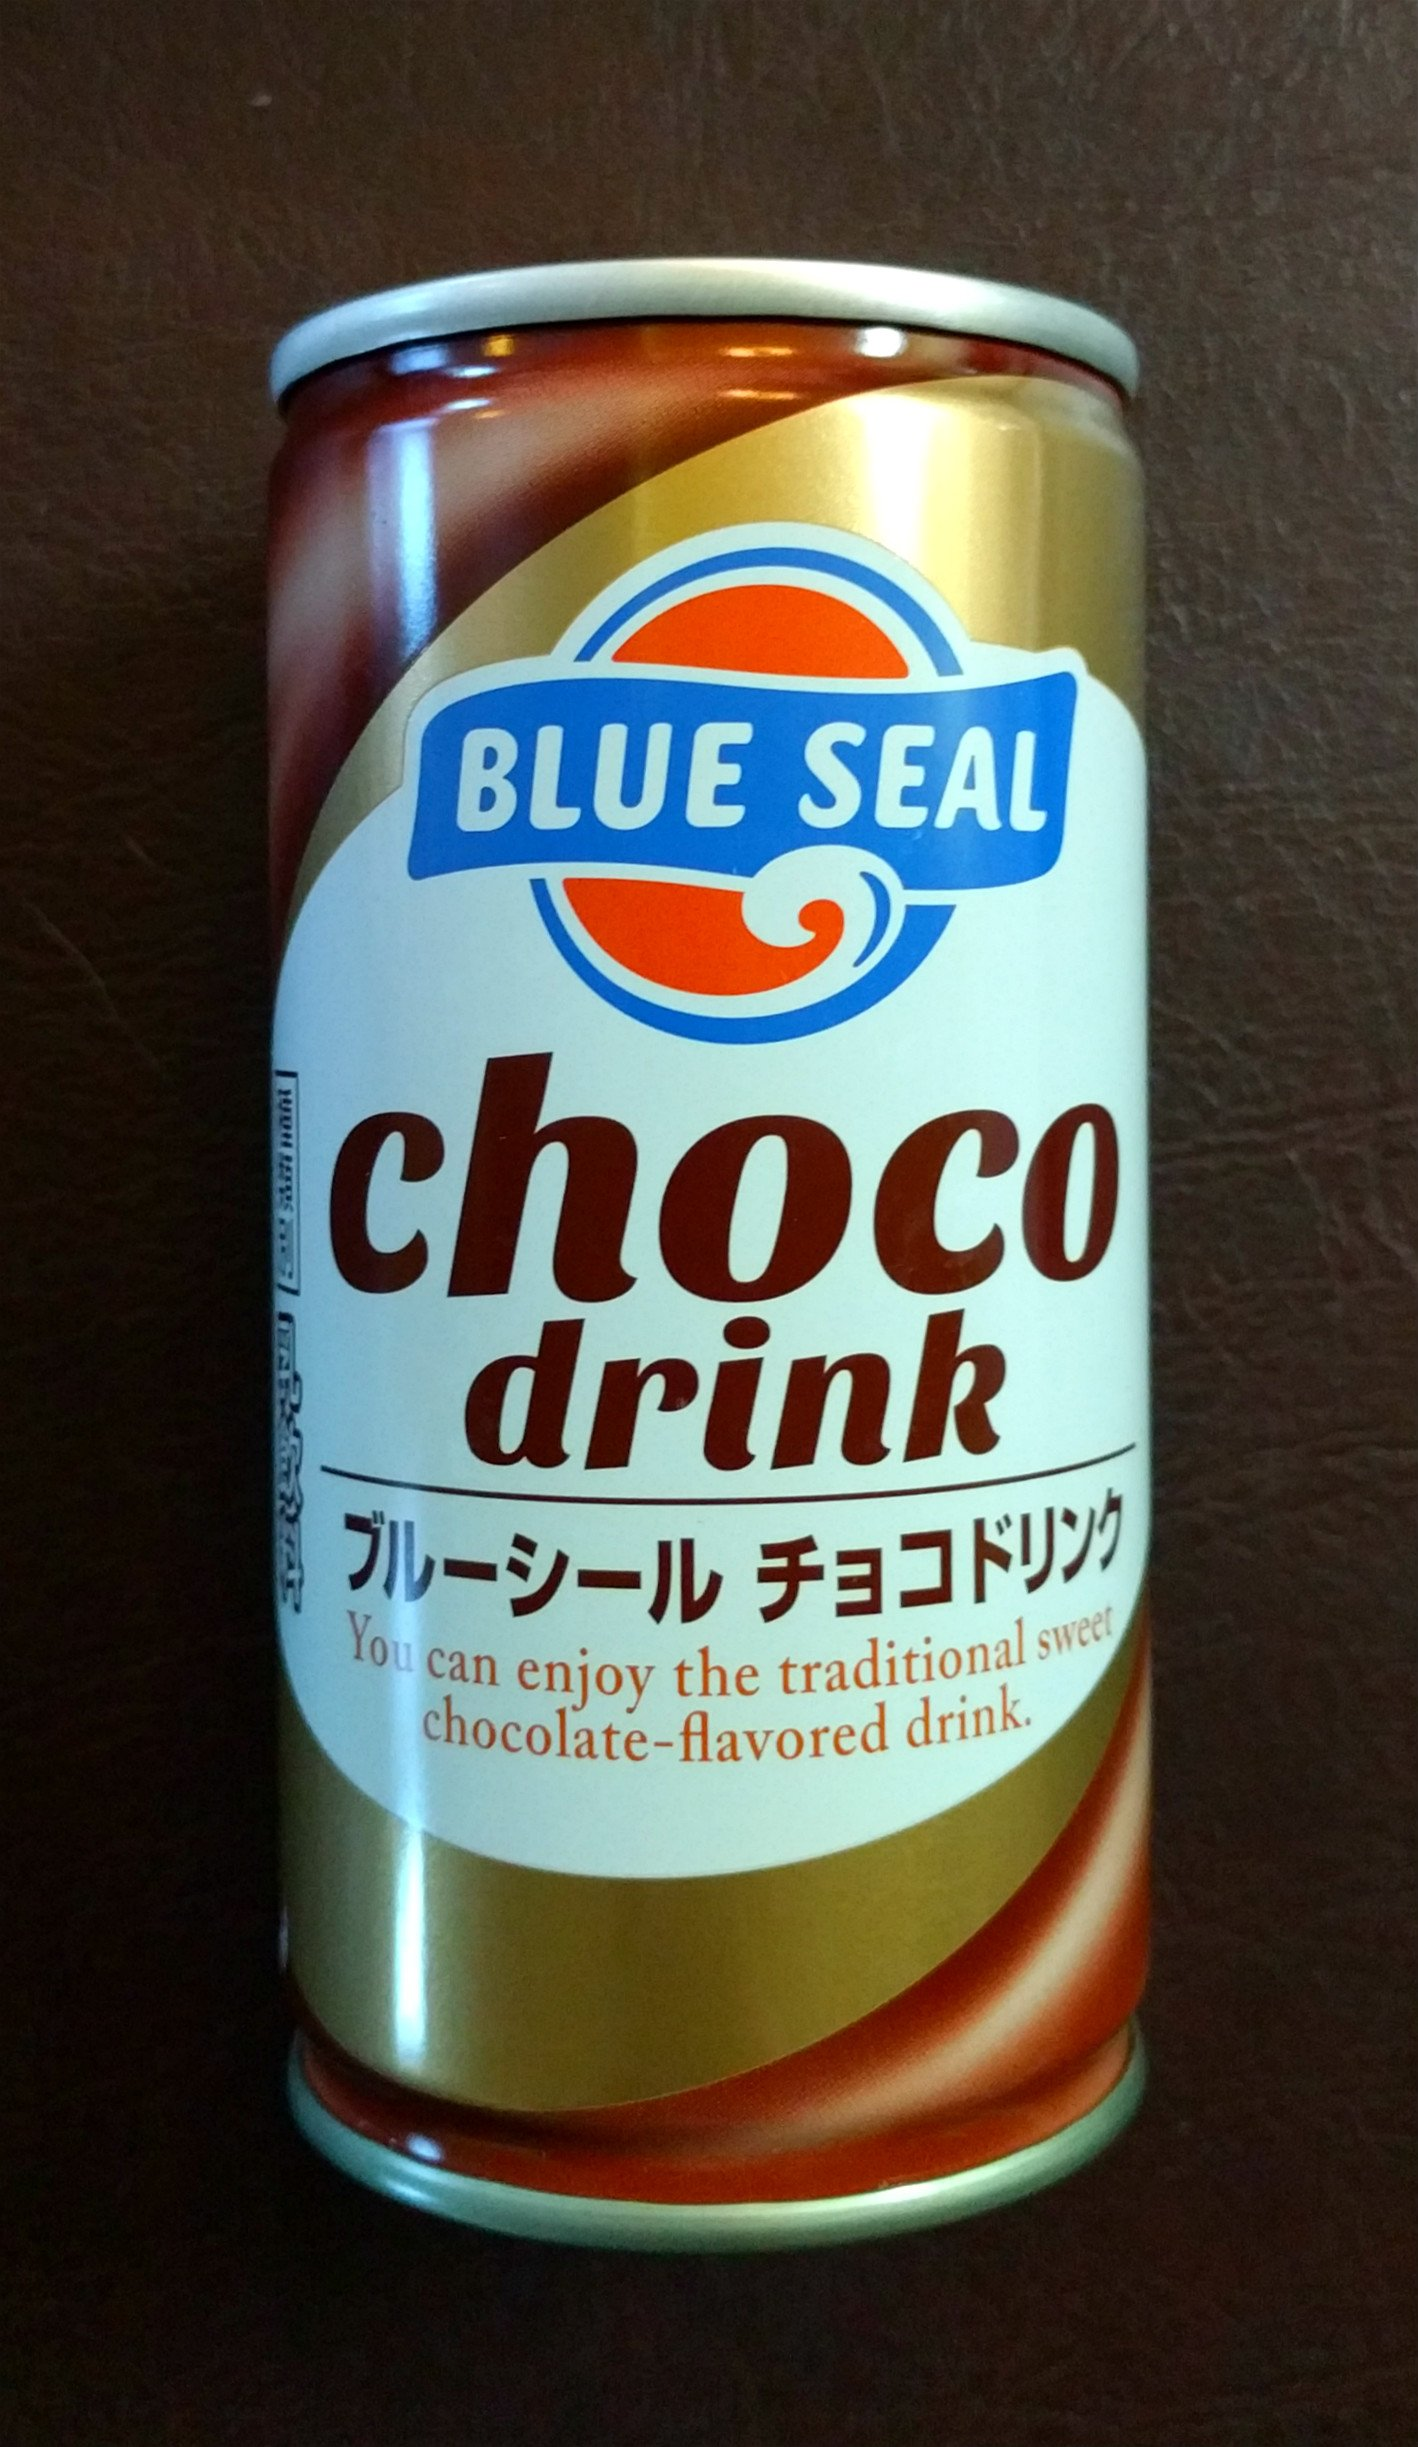 Blue Seal Choco Drink 190g/can (30 can) Okinawa sweet chocolate flavor drink by Blue Seal